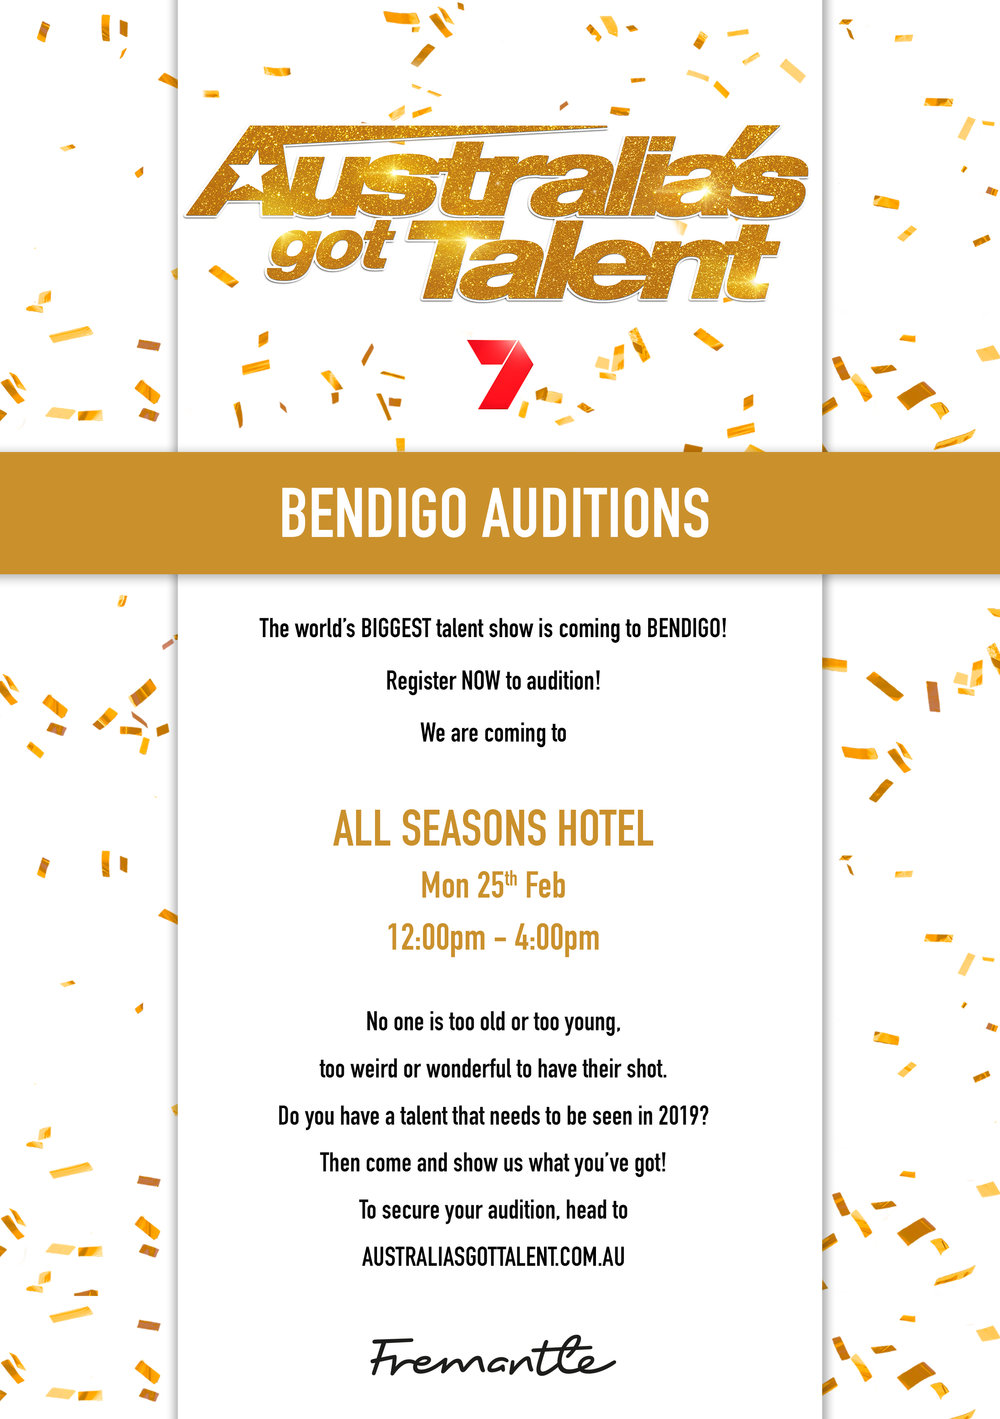 AGT_Bendigo_Audition Flyer.jpg